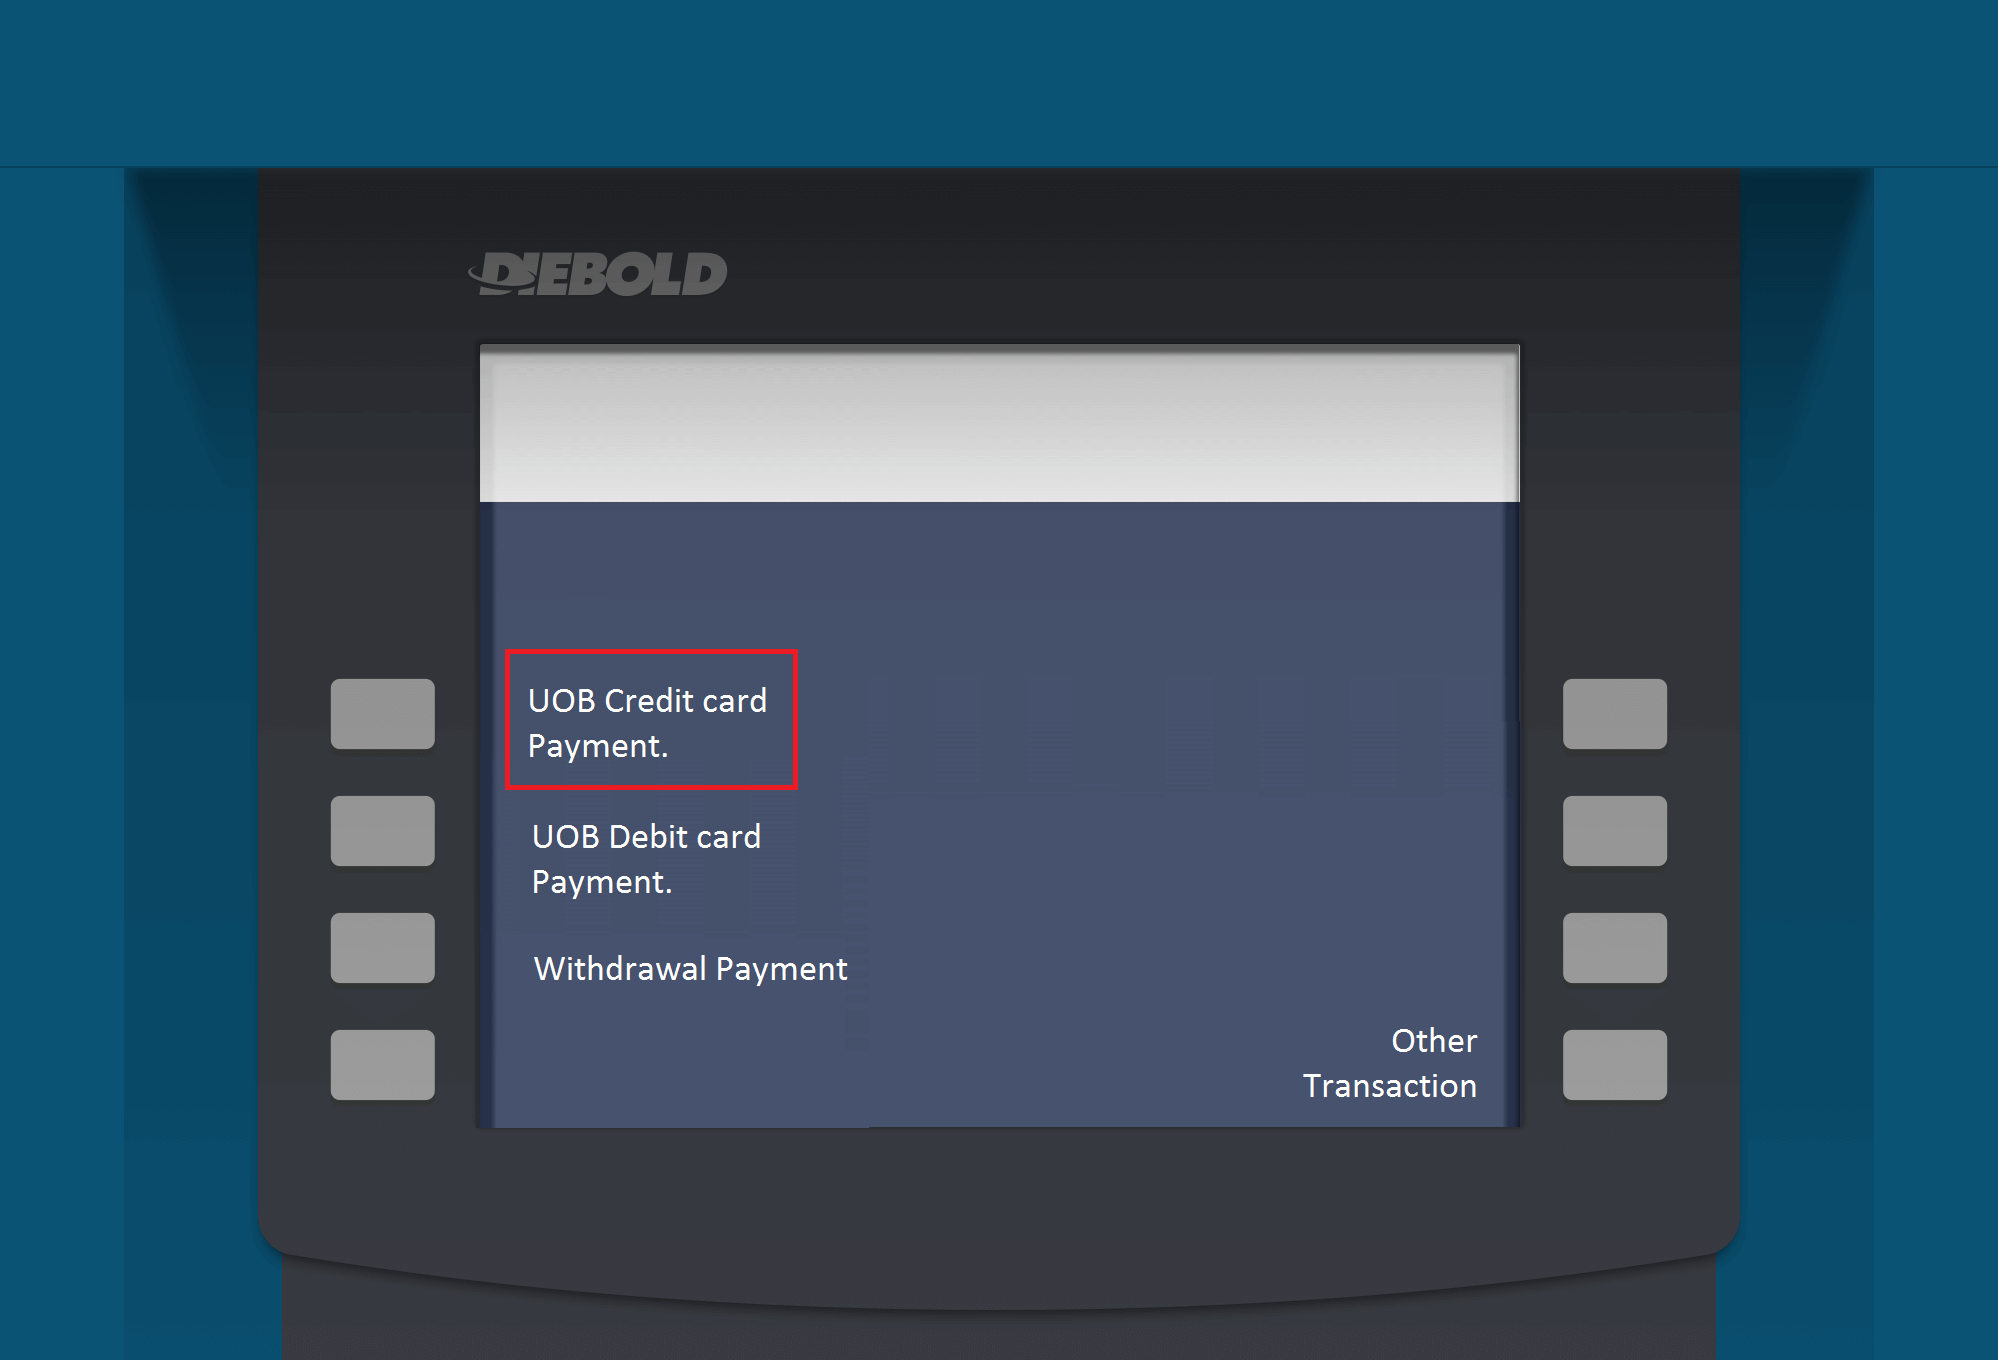 How to Pay UOB Credit Card Bill Online